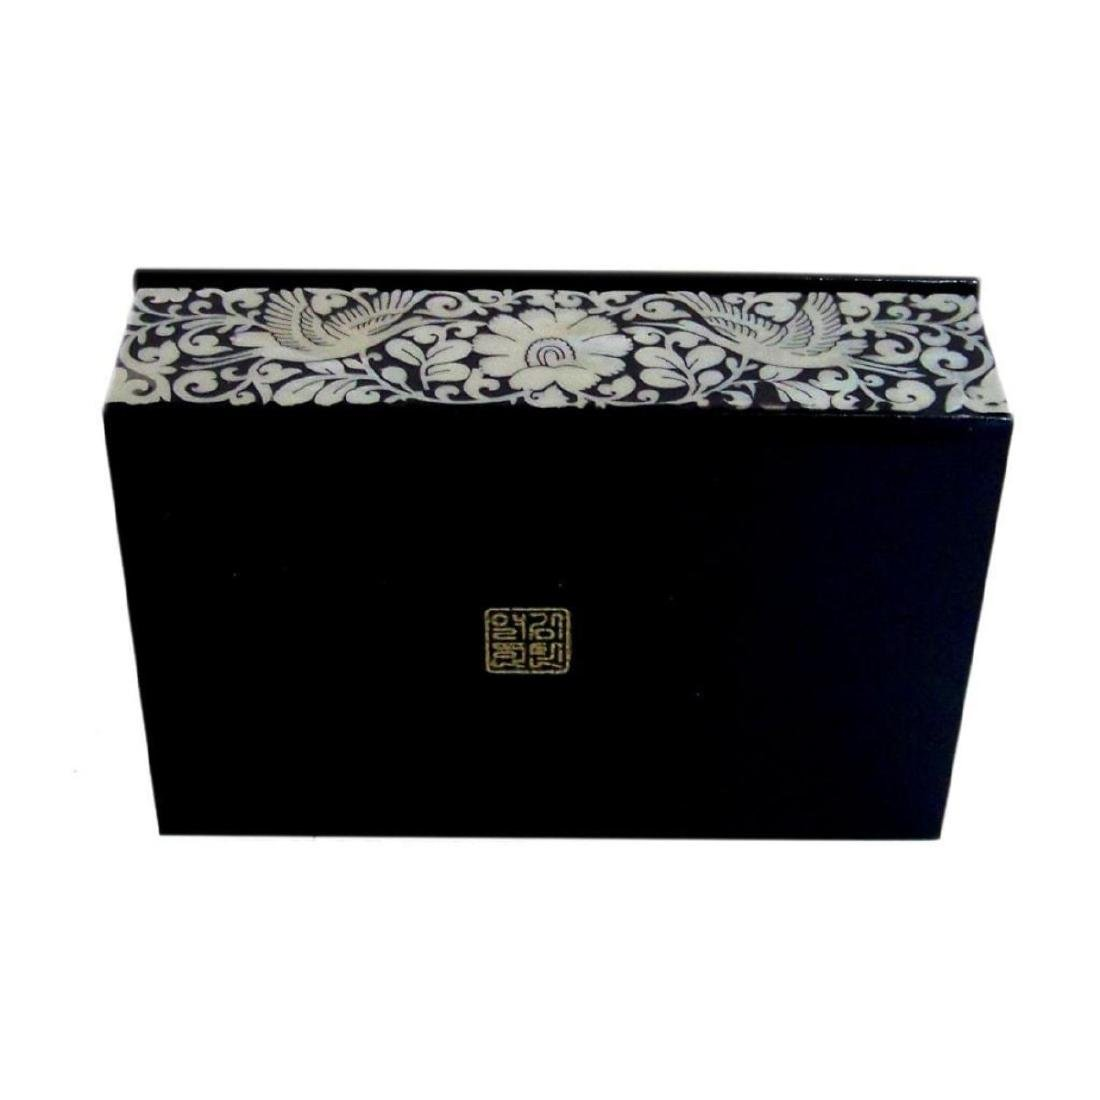 Mother Of Pearl Inlaid Box_ Lacquer Ware Inlaid - 10